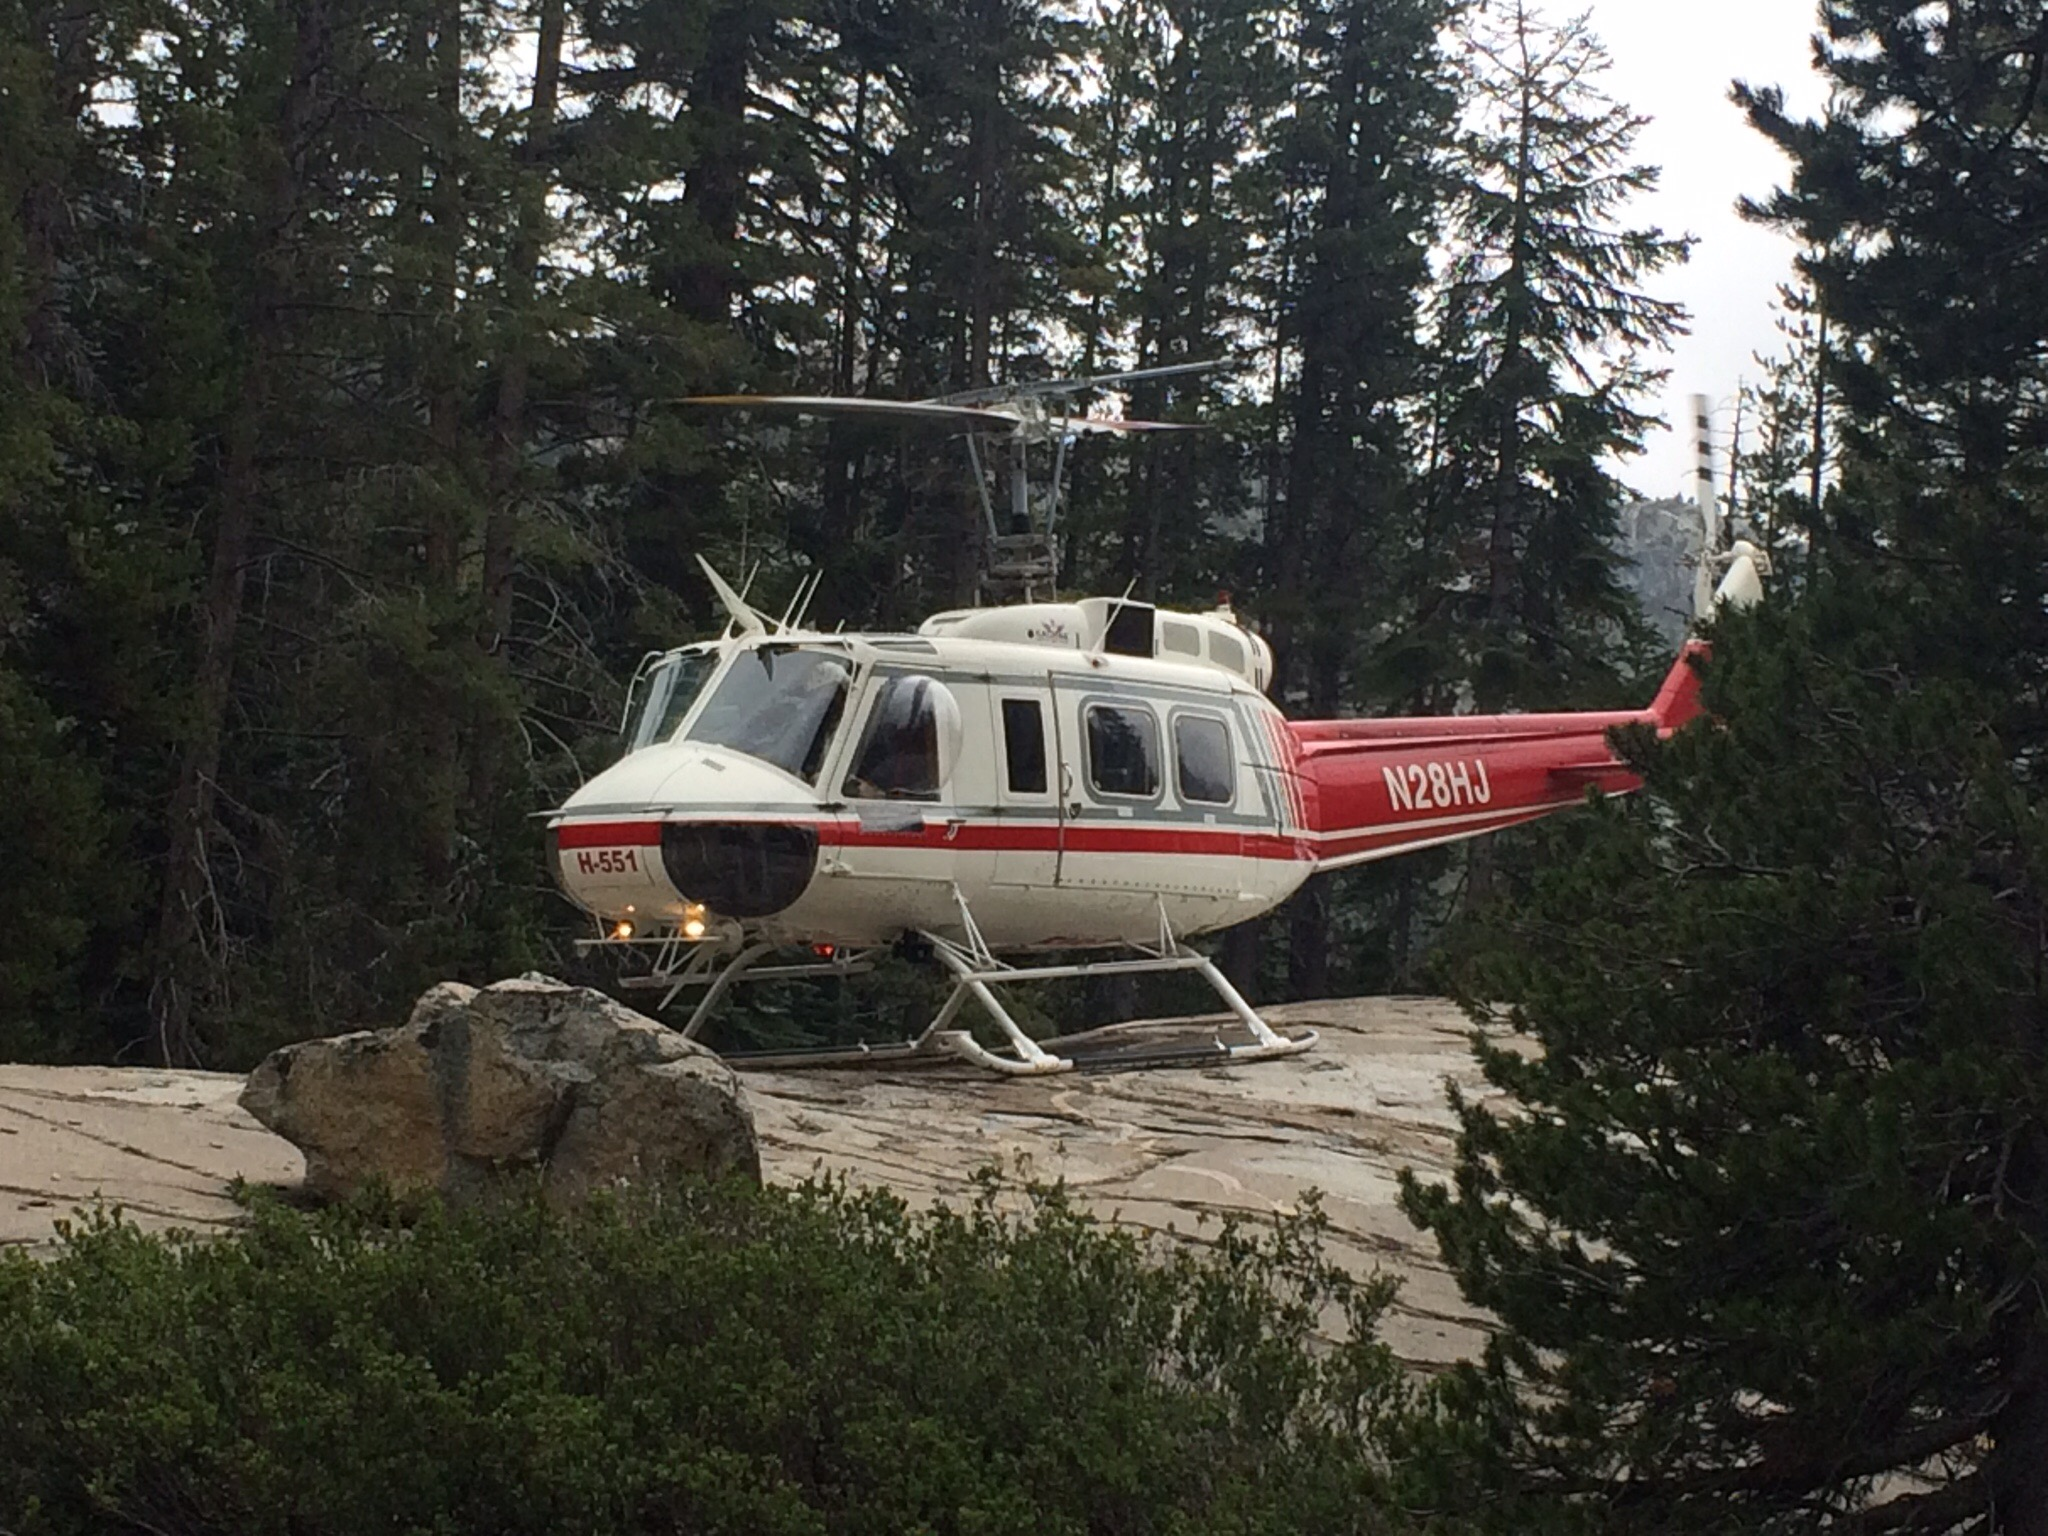 Rescue helicopter that somehow managed to land on a big rock in a small clearing.